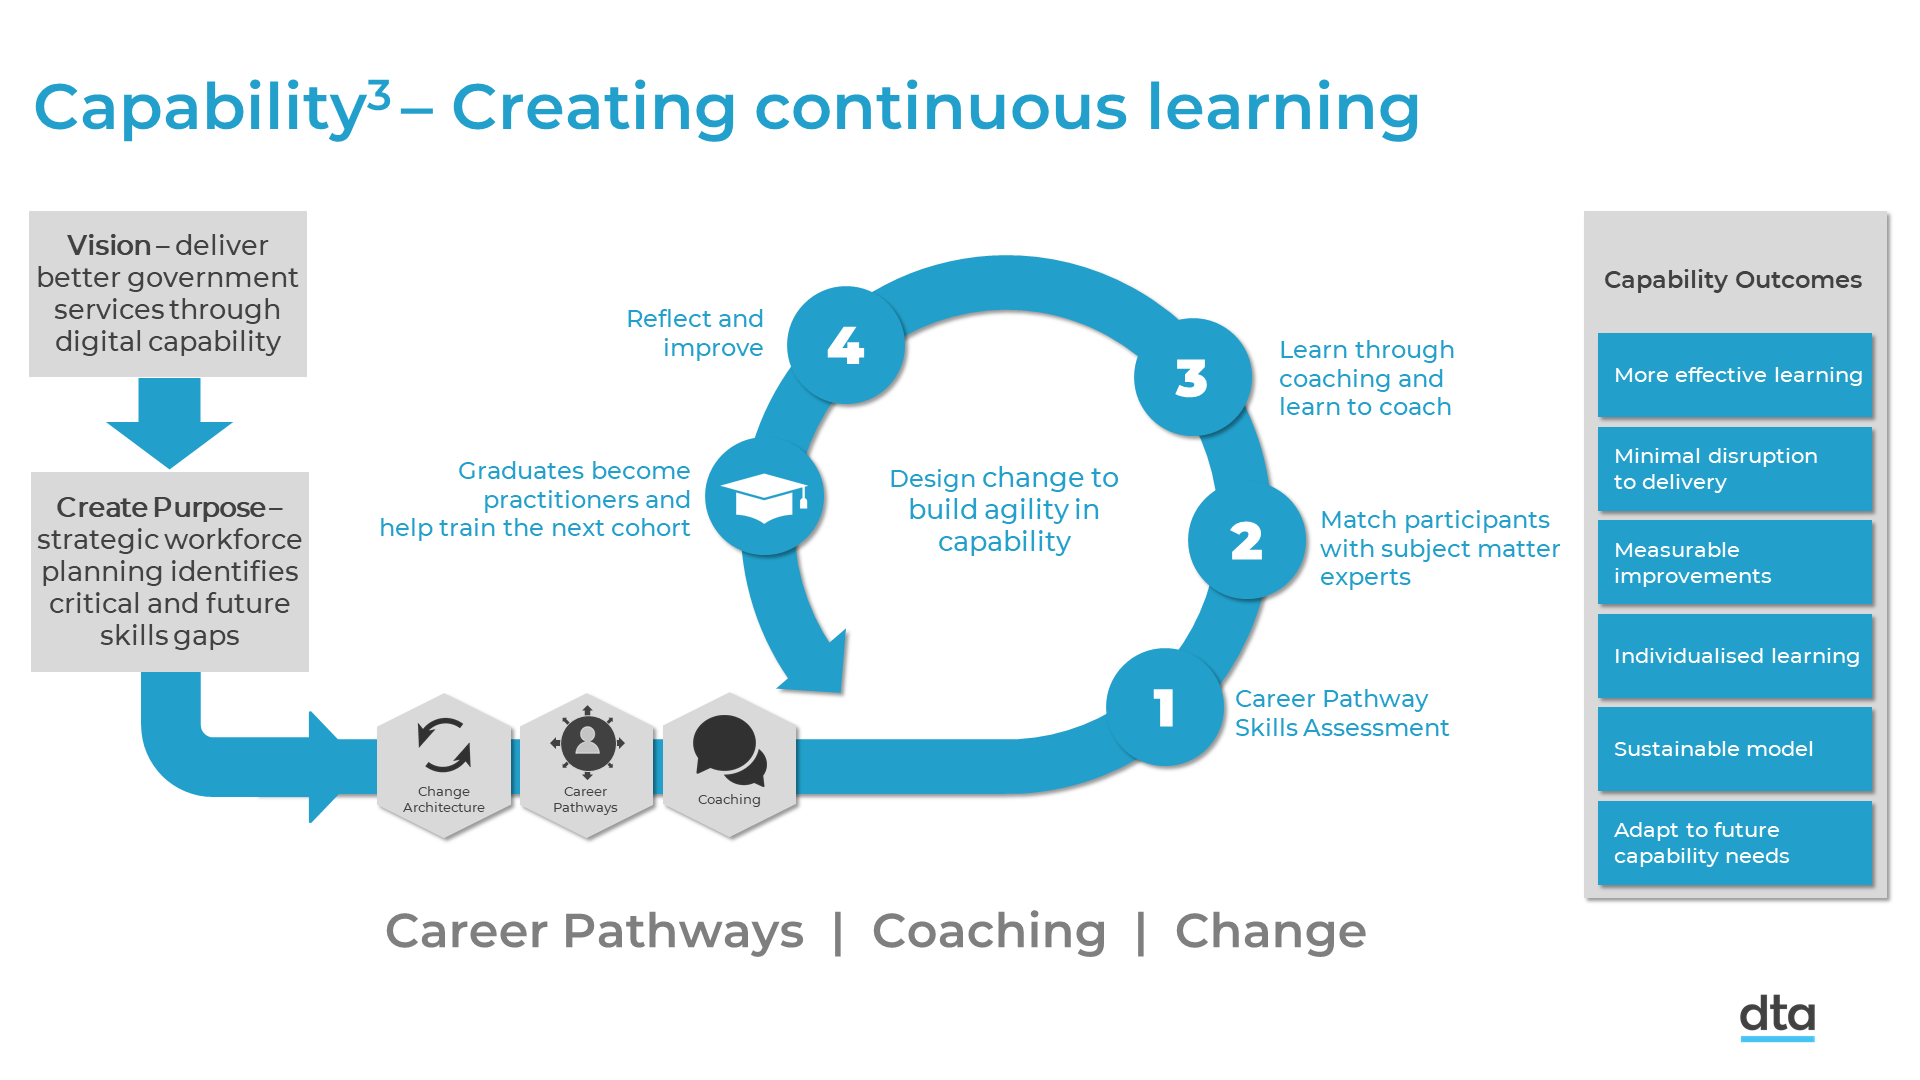 A cyclical diagram showing how a strategy connects to a strategic workforce plan to help you understand the skills and roles you have and what you need to deliver your strategy. This creates purpose for capability development, and the capability cubed model aims to create a cycle that allows people to continually learn. The diagram shows how learners might join the learning cycle, be assessed for their individual skills needs, and be connected with a subject matter expert. The subject matter expert is trained to coach, and then coaches their learner - or participant, as we call them - to address their individual skills needs through on-the-job coaching. After time, those learners have new and applied skills, and can start coaching others. This creates a cycle of continuous learning. On the right of the cyclical diagram is a statement of the capability objectives of this approach, including that it is more sustainable, more effective in helping people learn, and reduces loss of productivity because people are learning using real work examples.